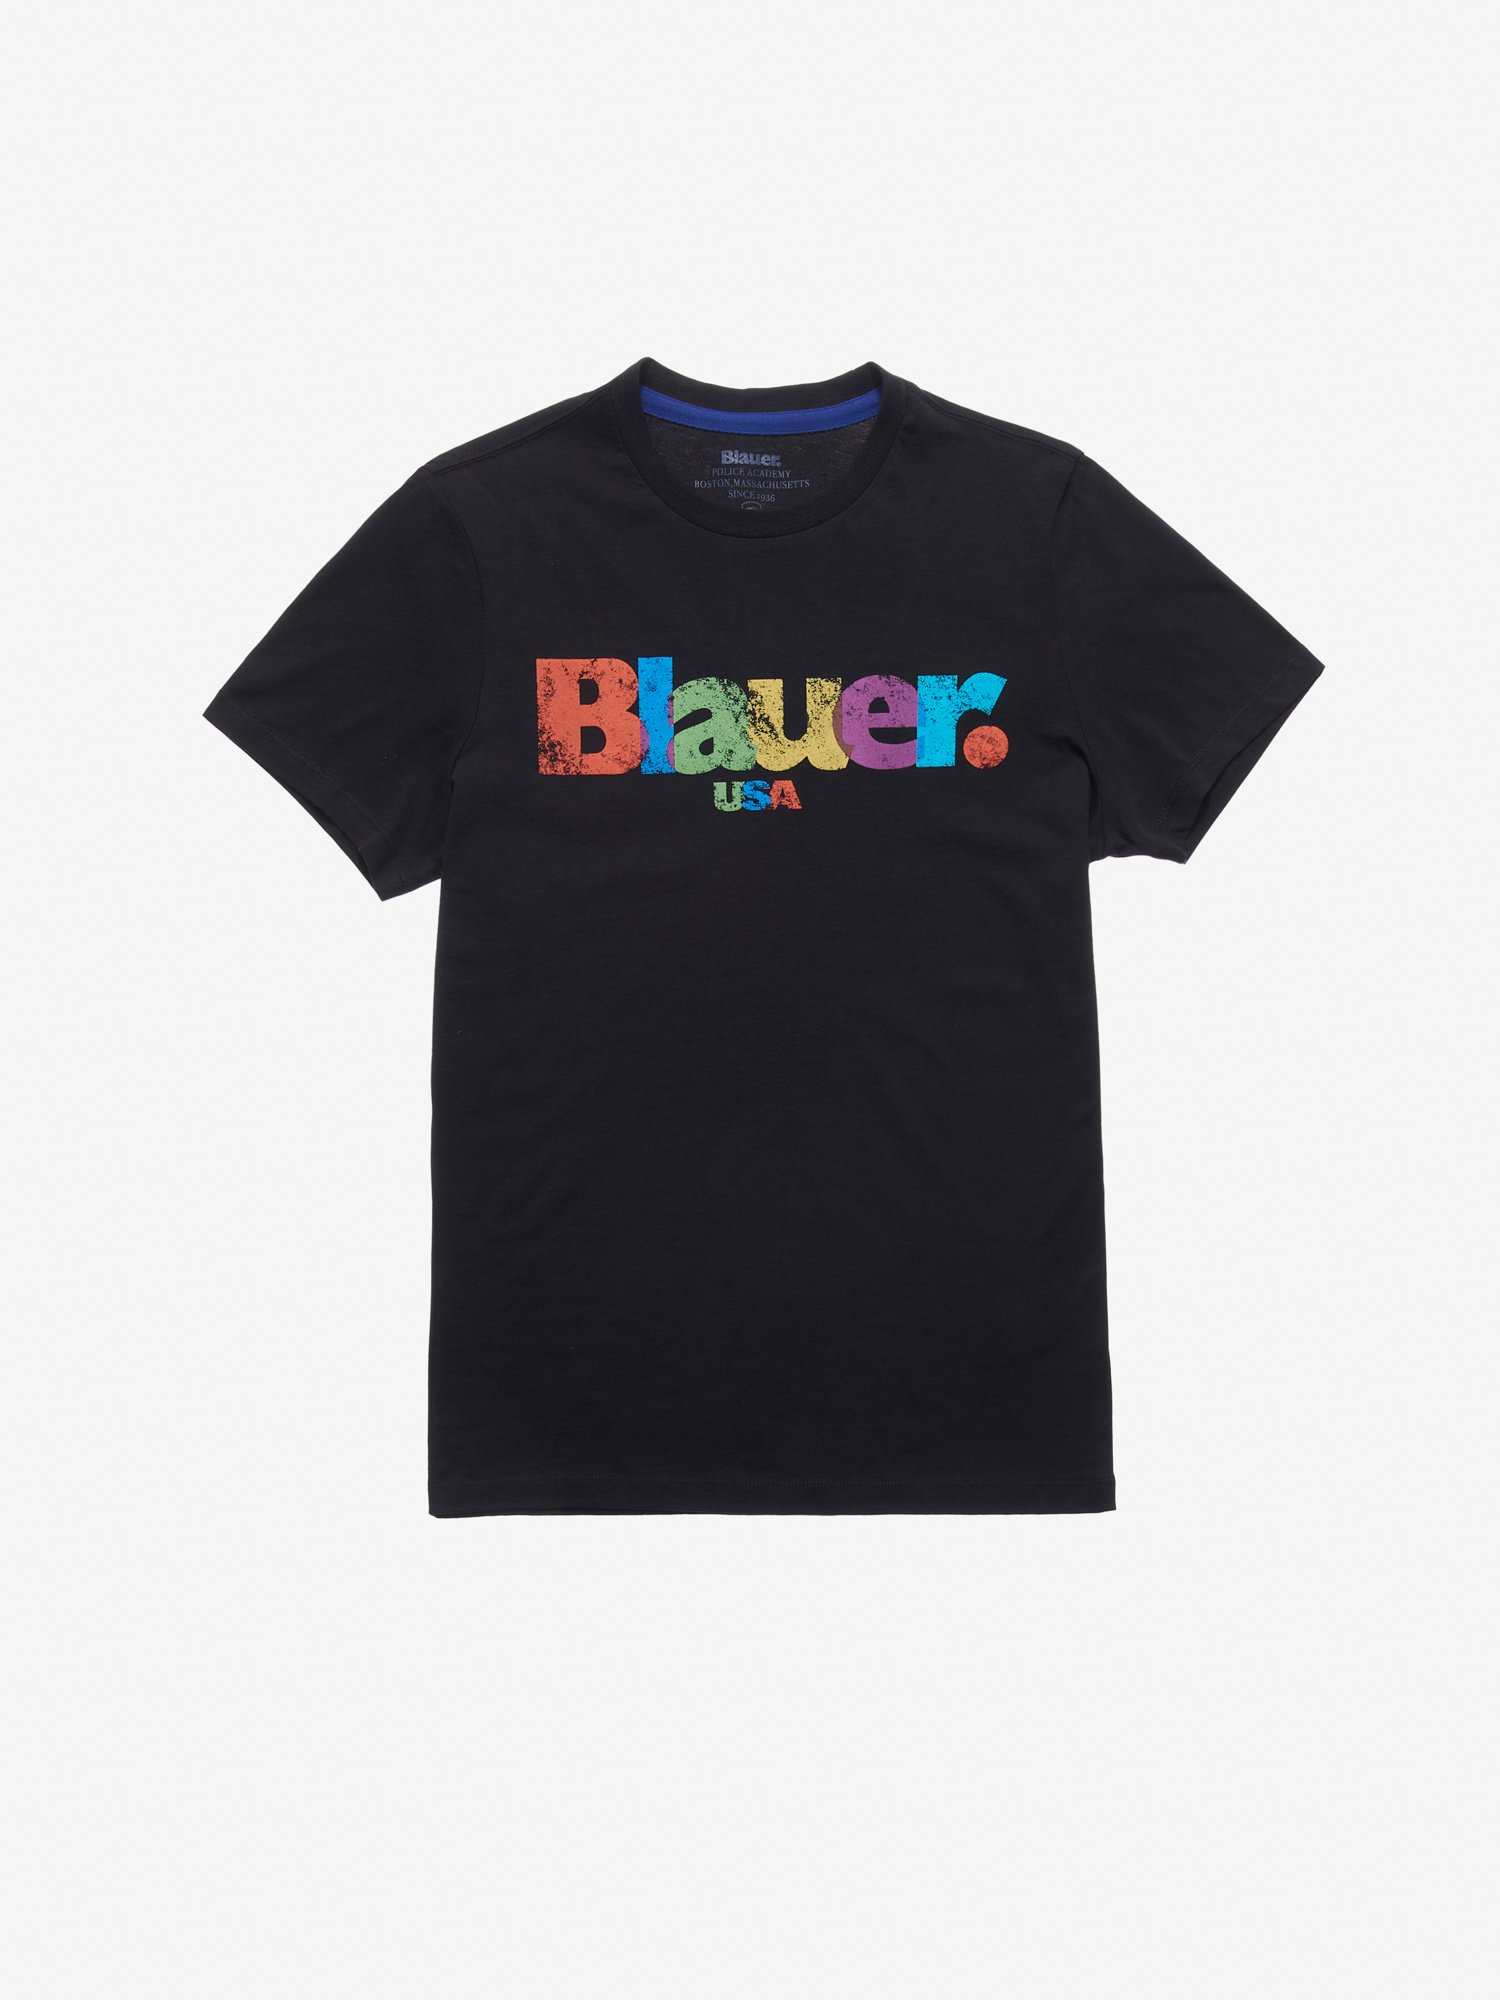 1849b66f1813 Blauer - MULTICOLOR PRINT T-SHIRT - Black - 1 ...